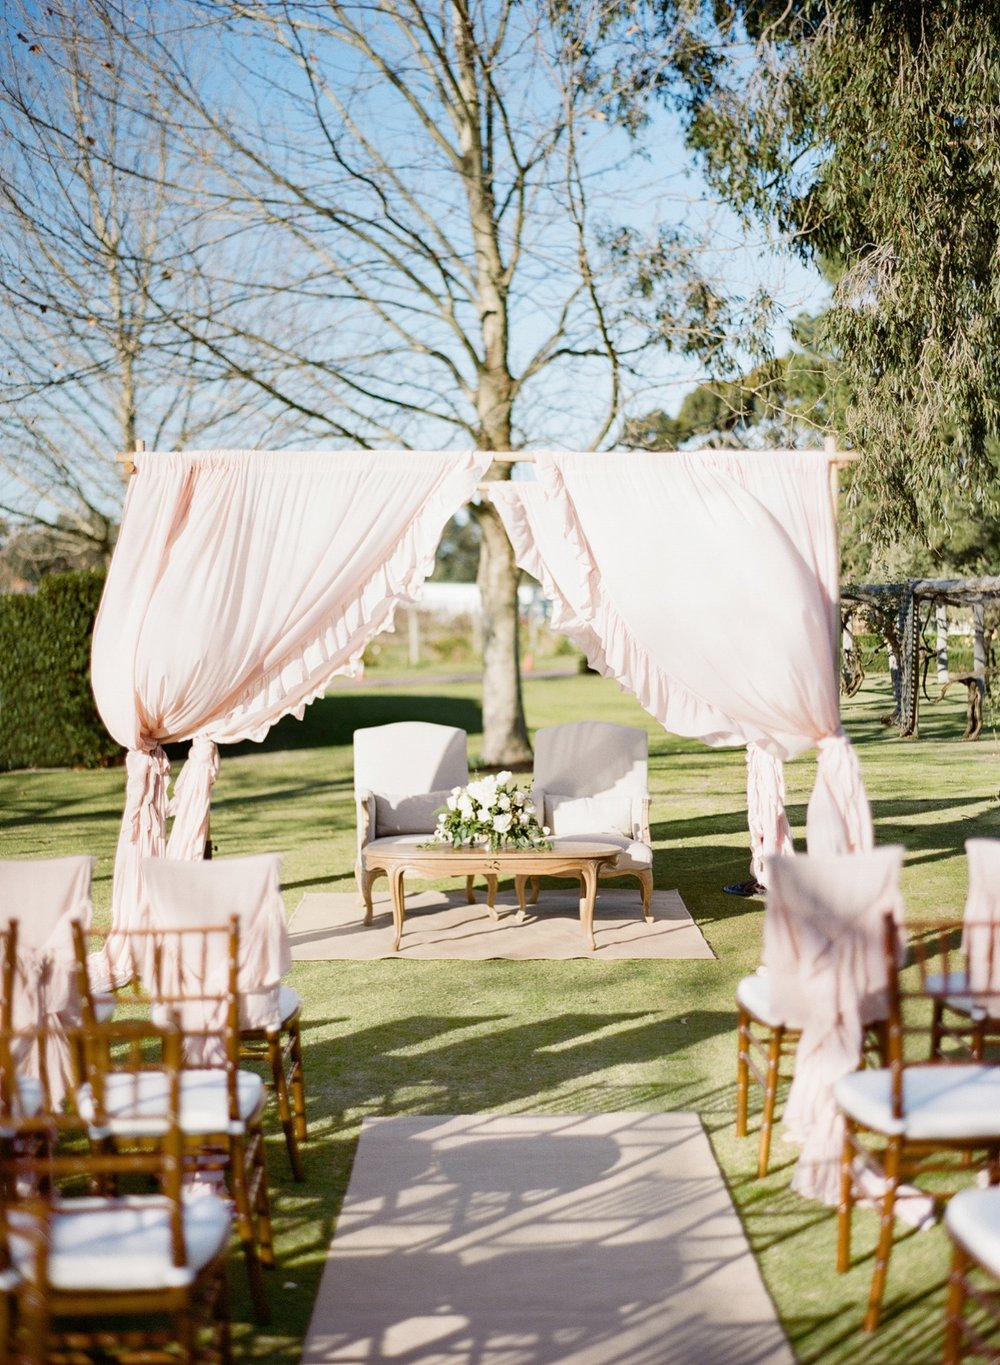 Wedding Ceremony Furniture Perth Bride + Groom